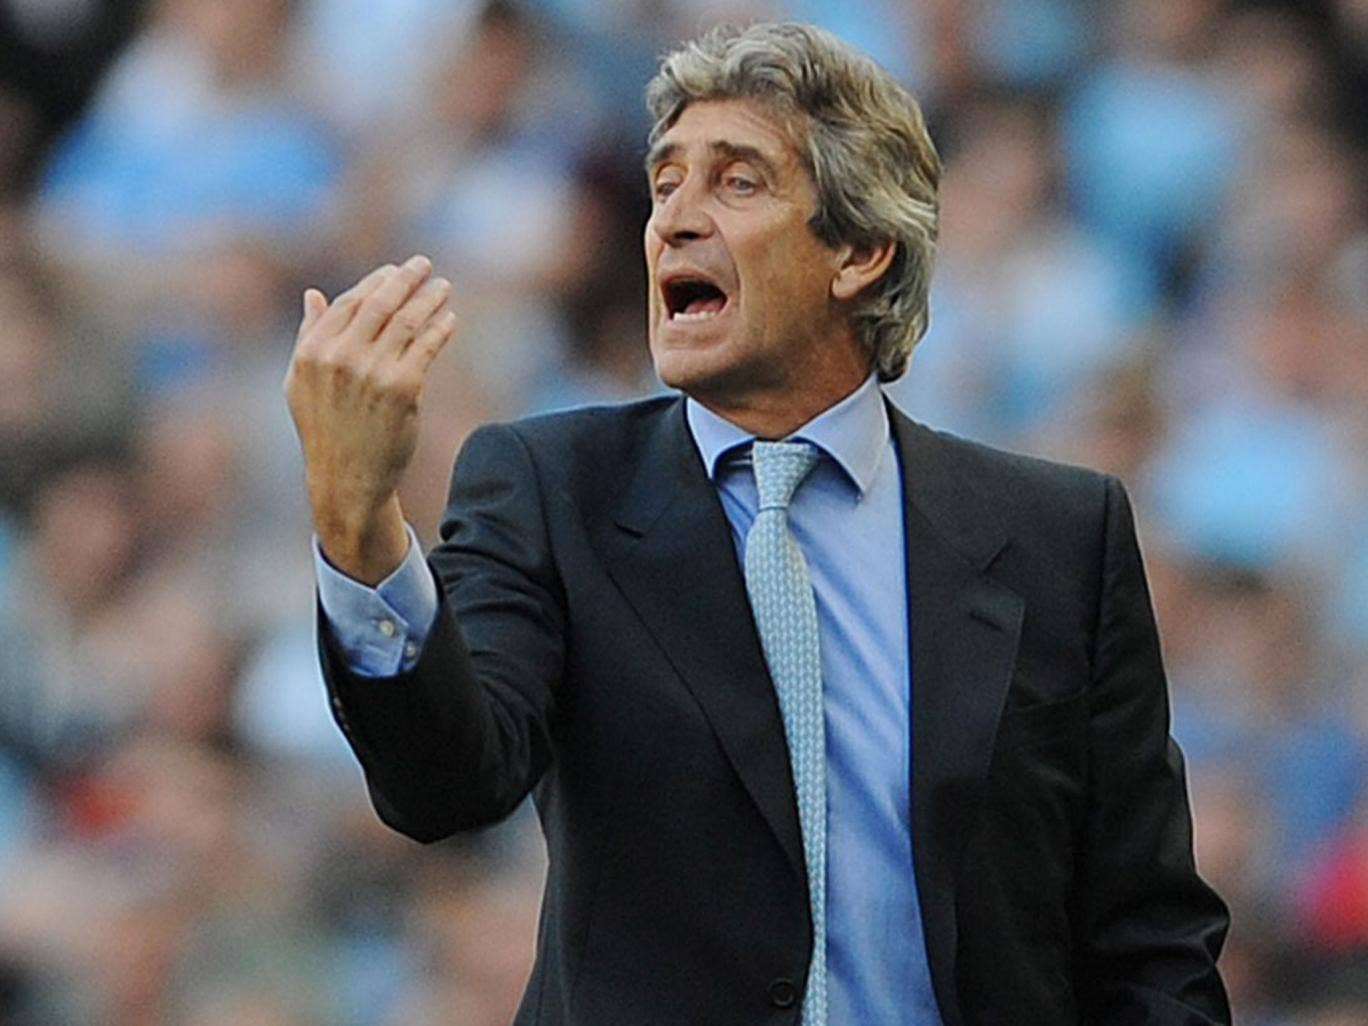 The Manchester City manager, Manuel Pellegrini, said that his side were superior and, if anything, played too quickly as the game wore on